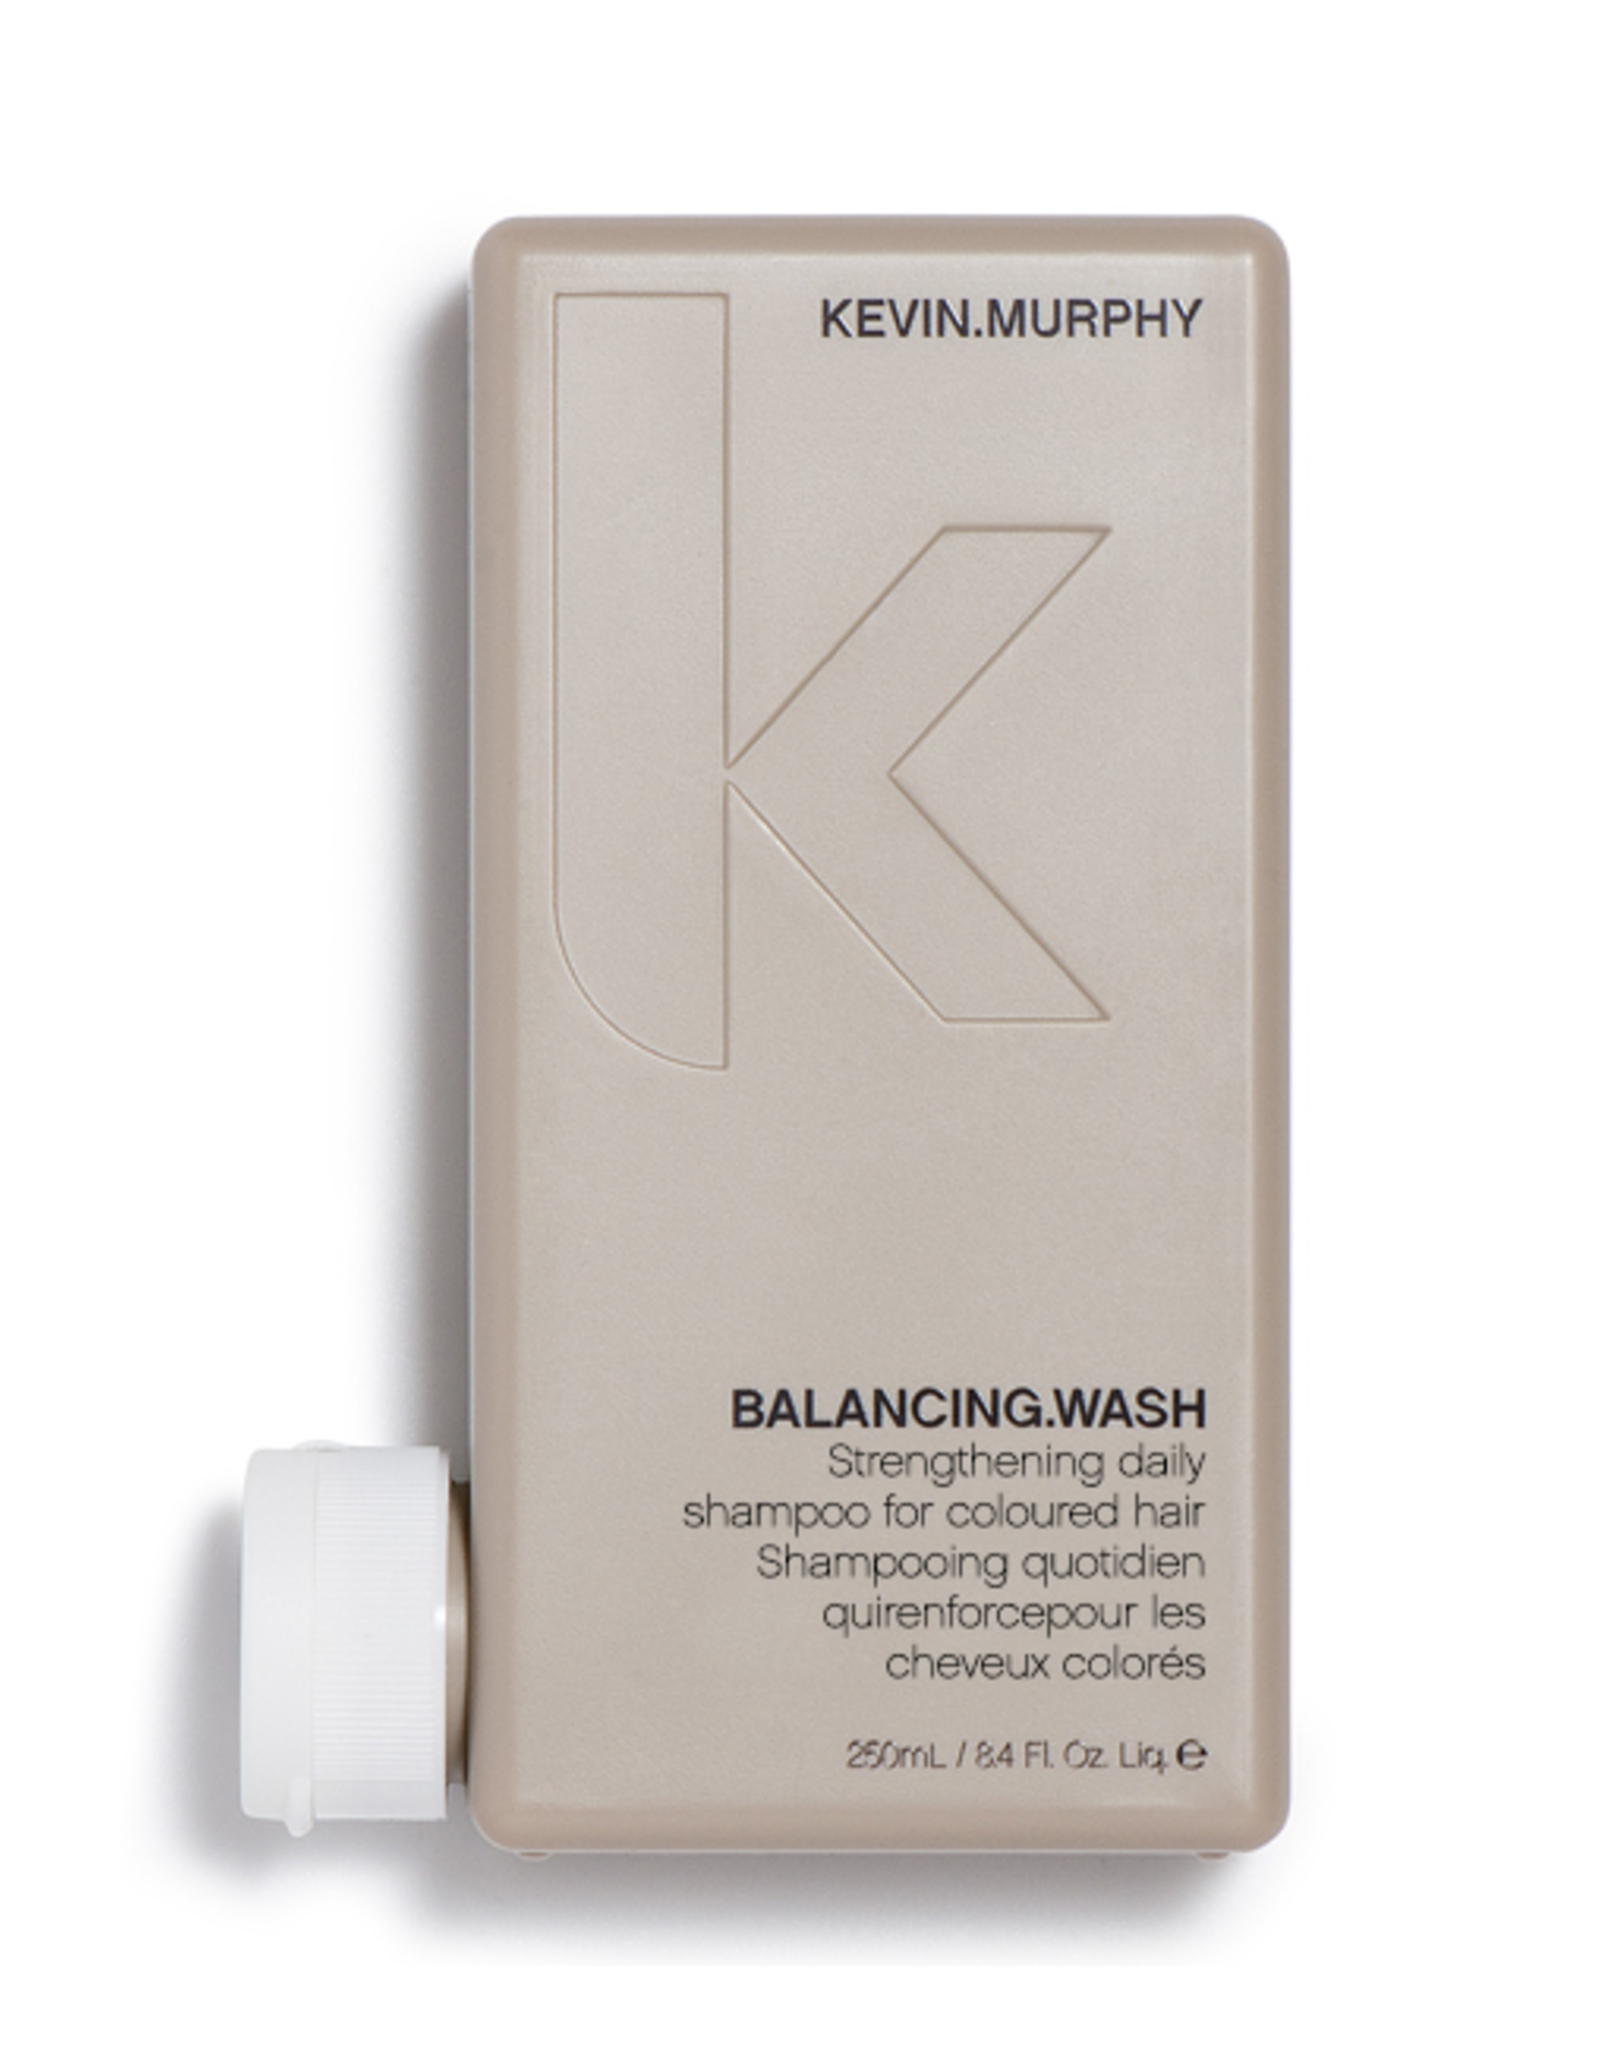 KEVIN.MURPHY Balancing.Wash (250 ml)